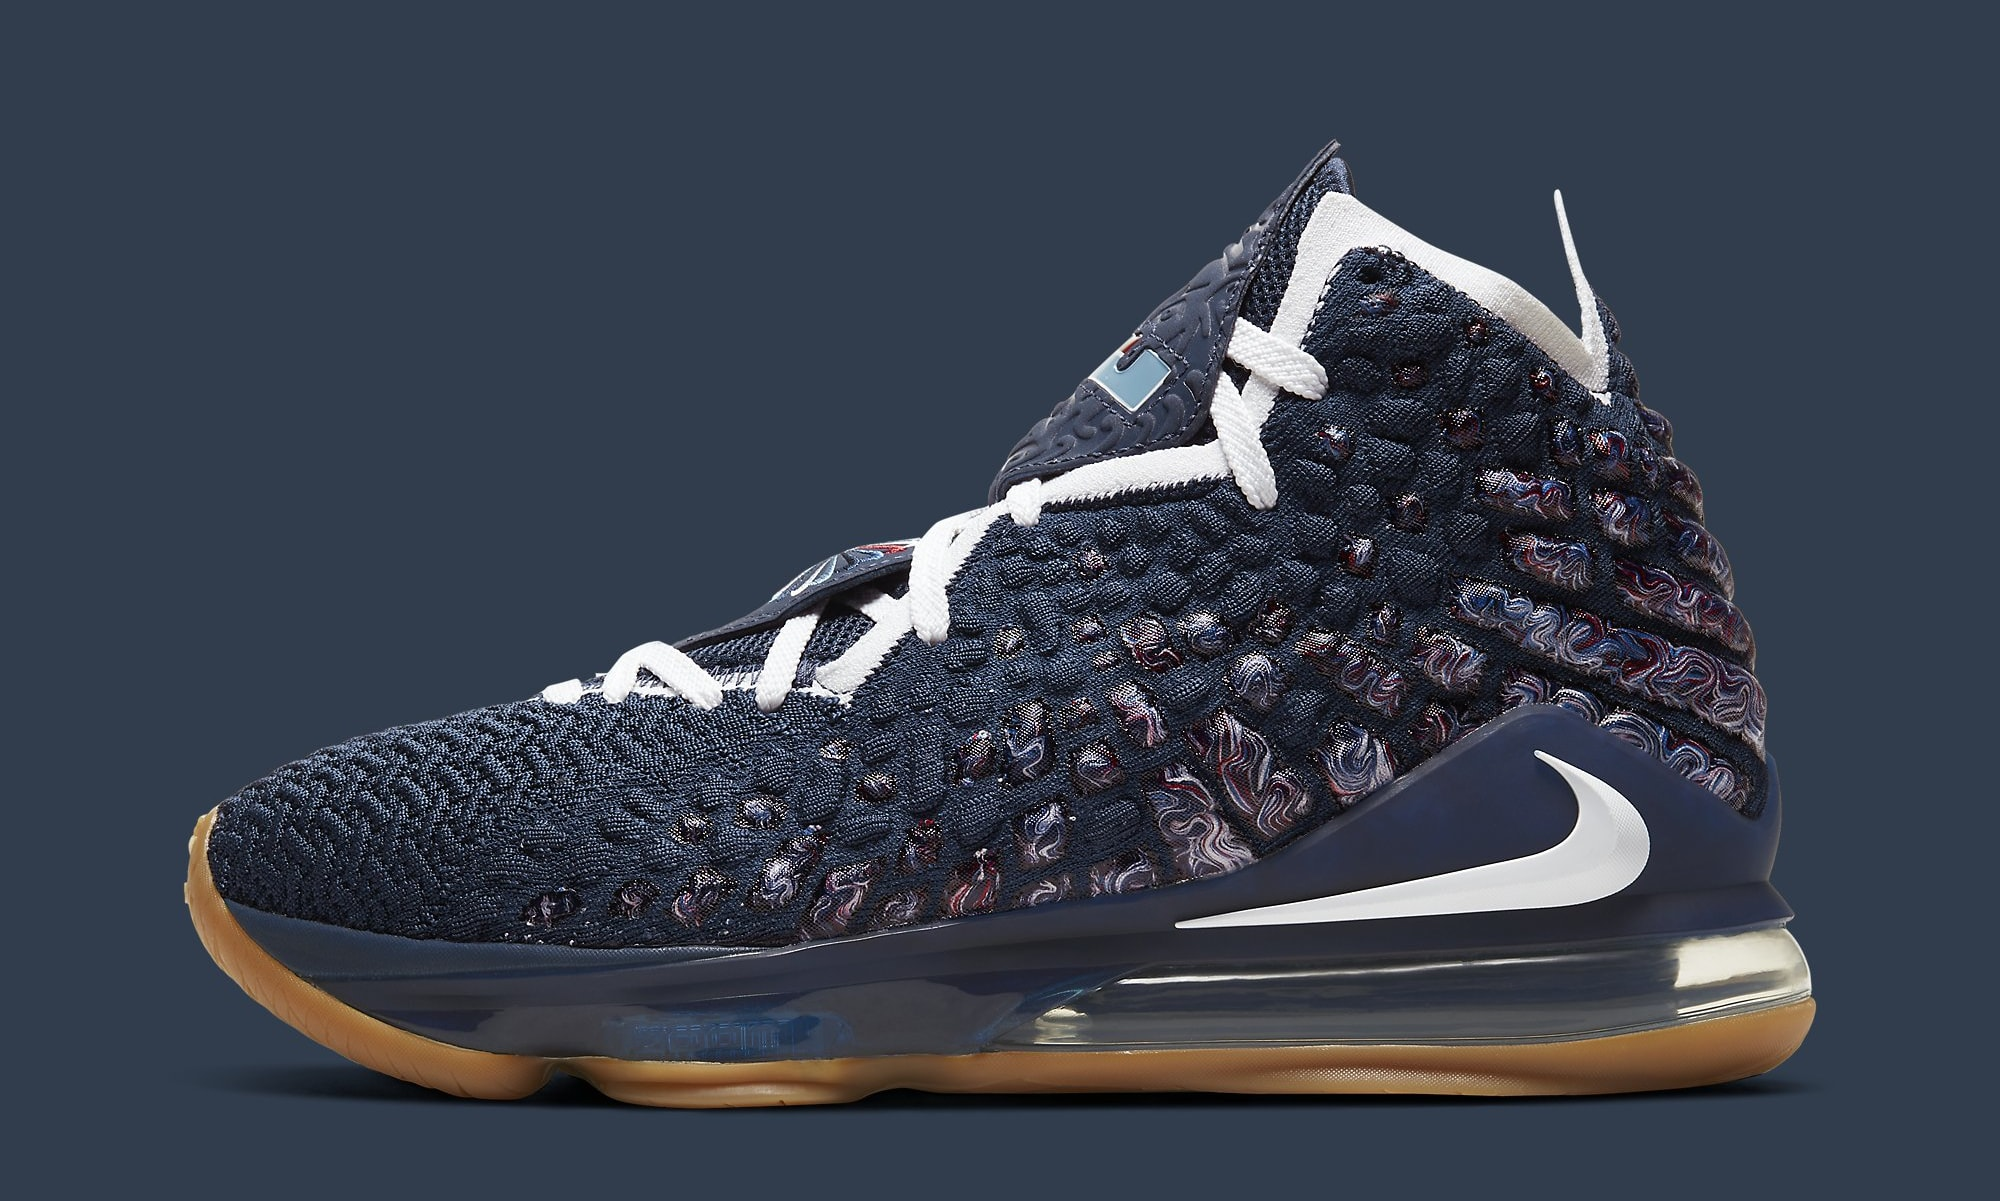 nike-lebron-17-xvii-college-navy-cd5056-400-lateral